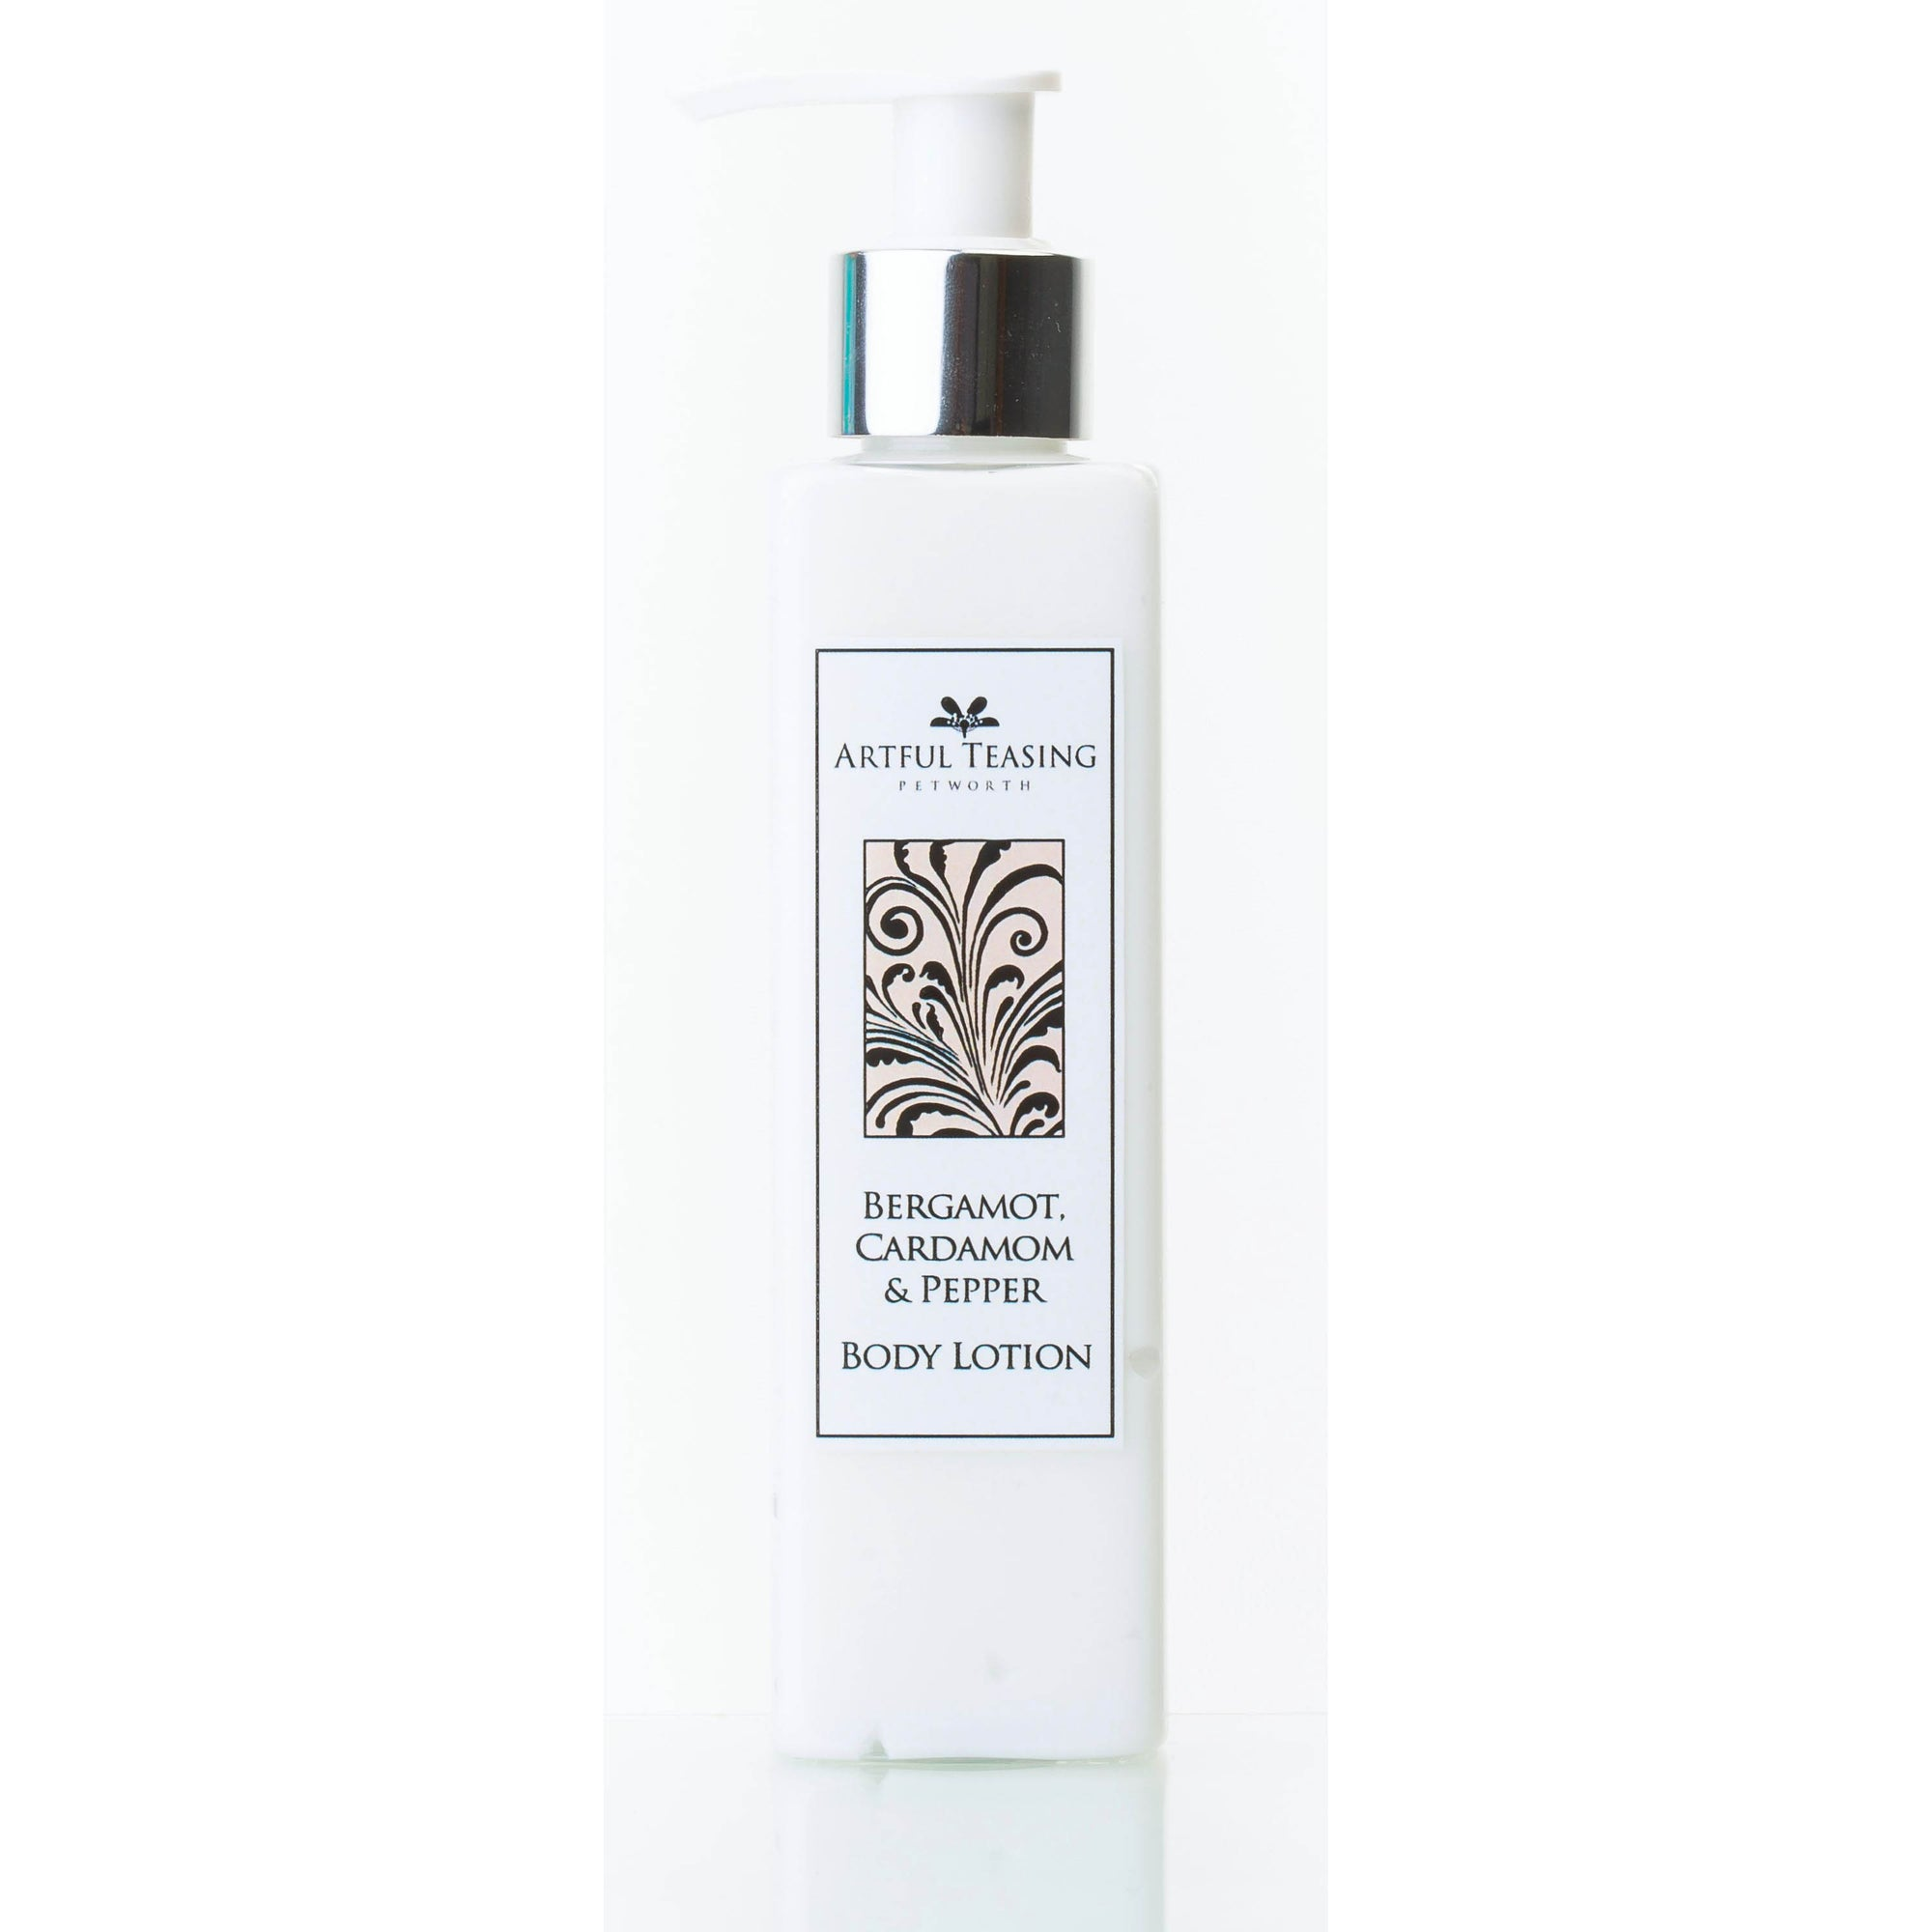 Bergamot, Cardamom & Pepper Body Lotion 200ml